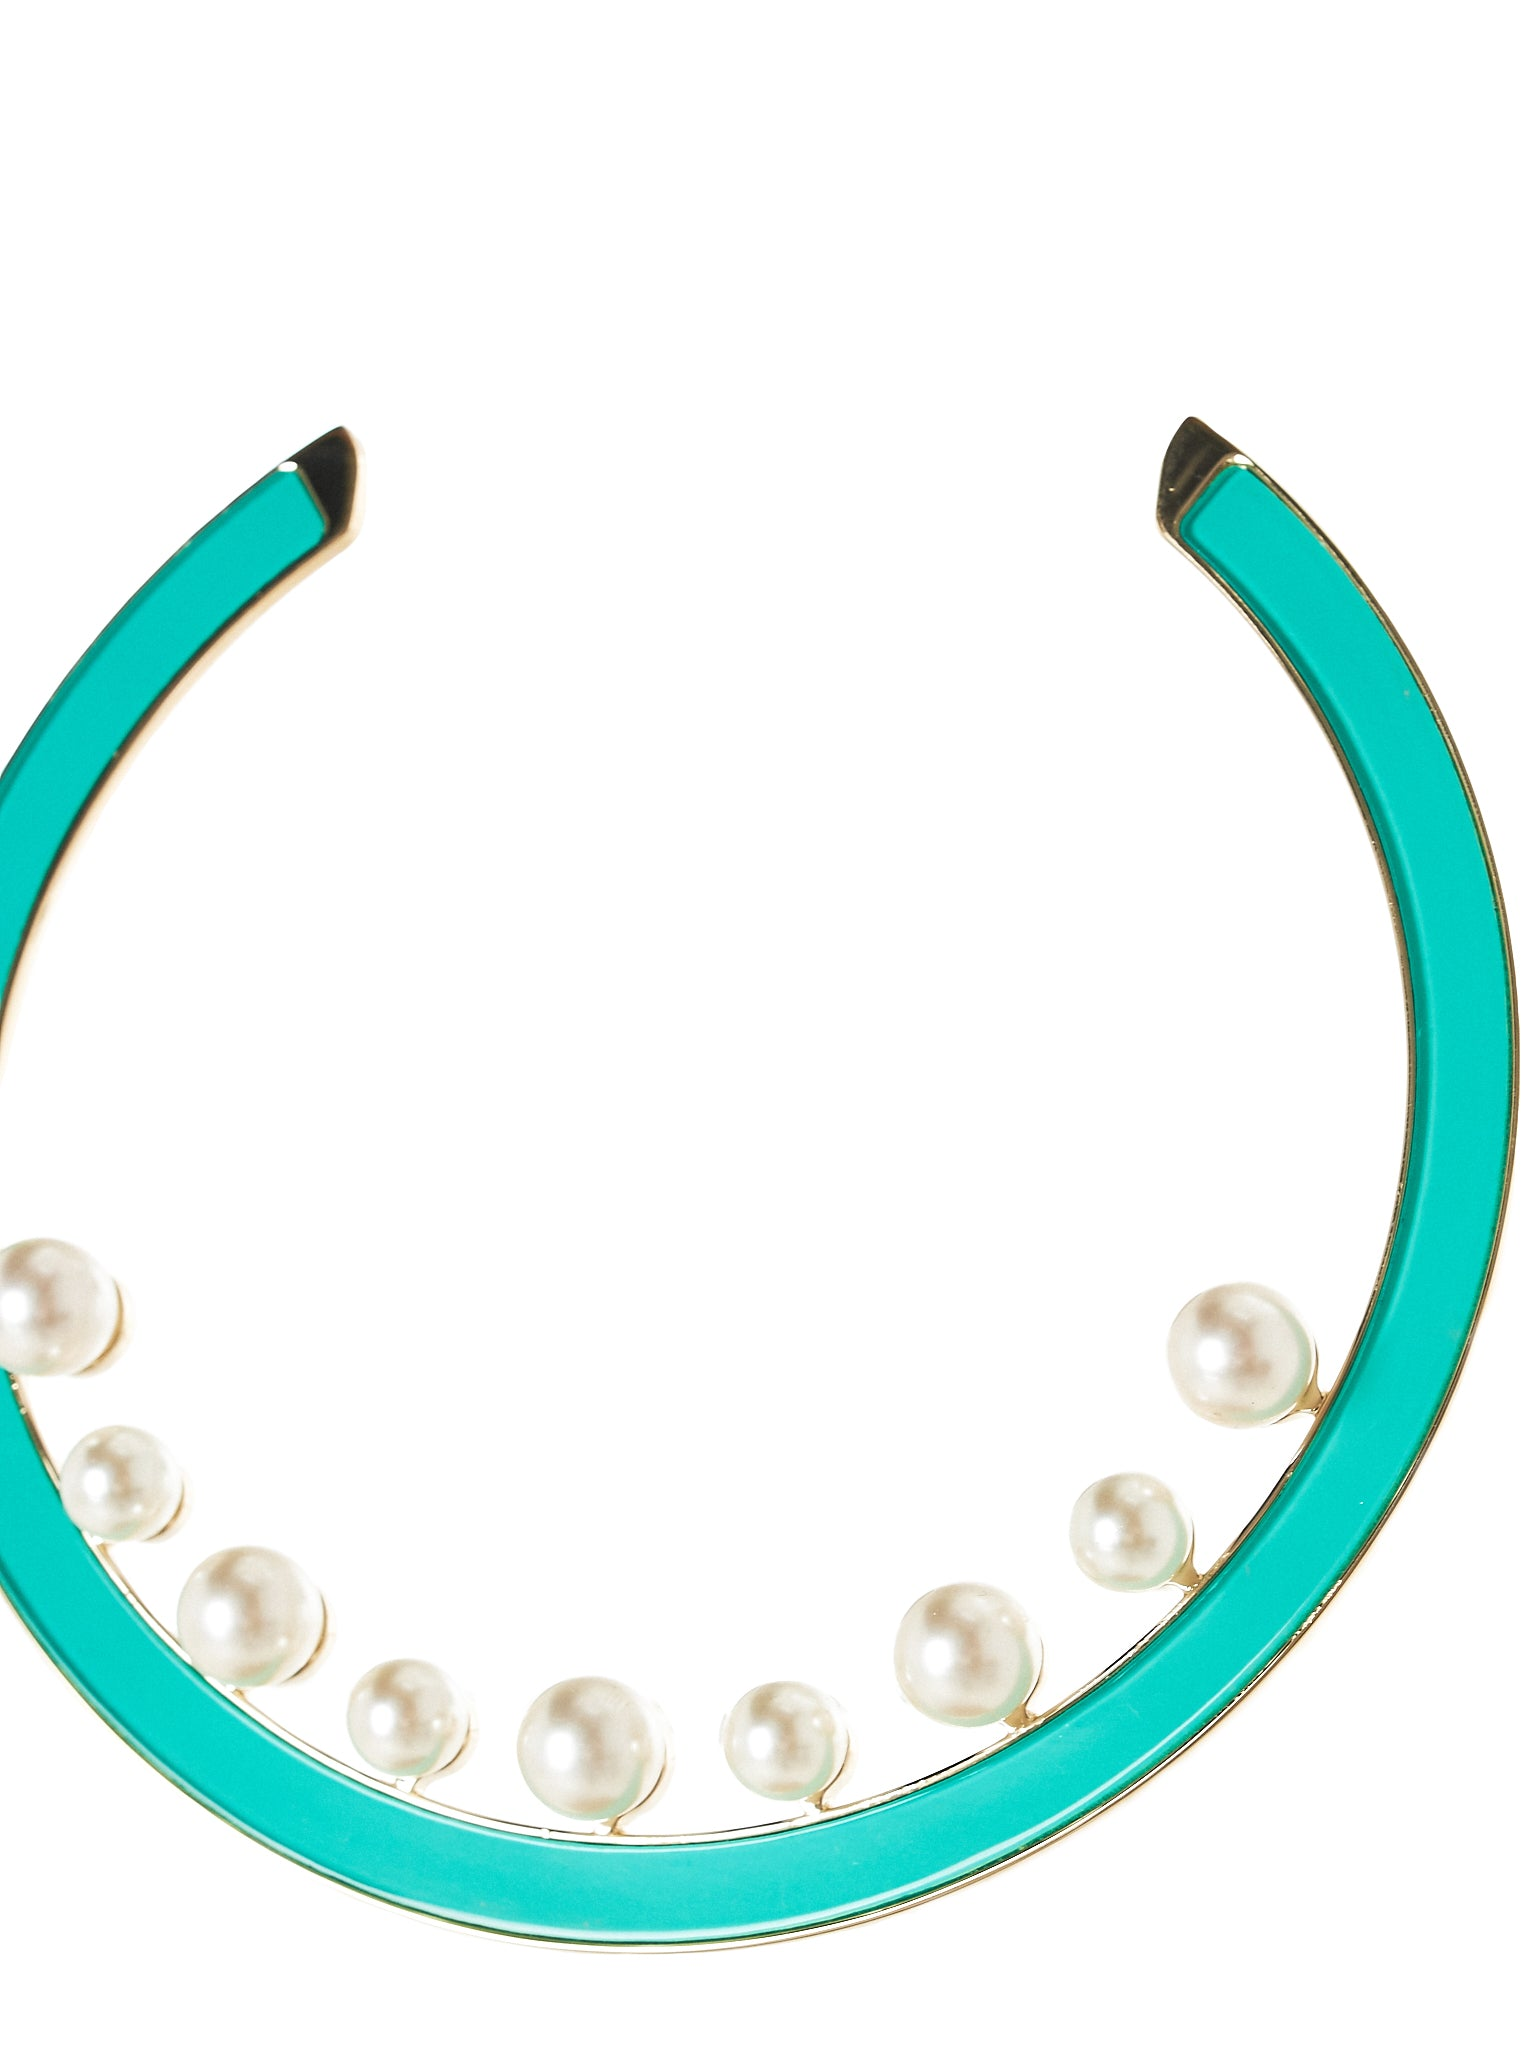 sylvio giardina pearl necklace - H.Lorenzo side